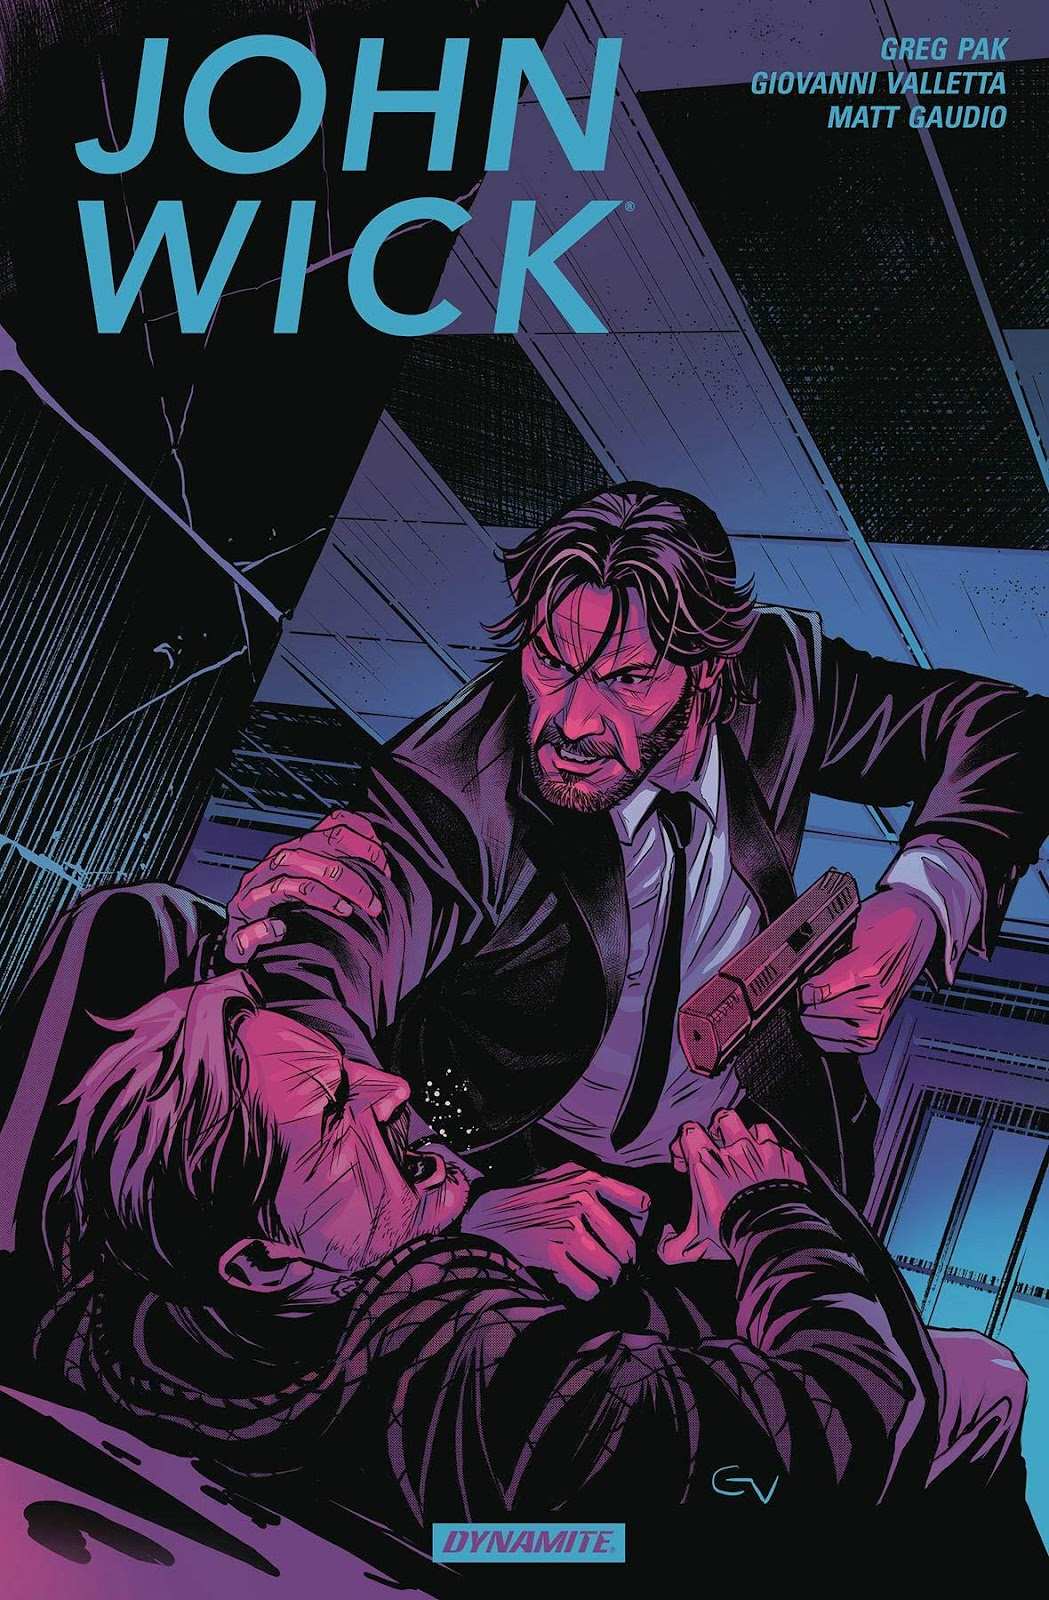 John Wick Vol. 1: Pak, Greg, Valletta, Giovanni: 9781524106829: Amazon.com:  Books